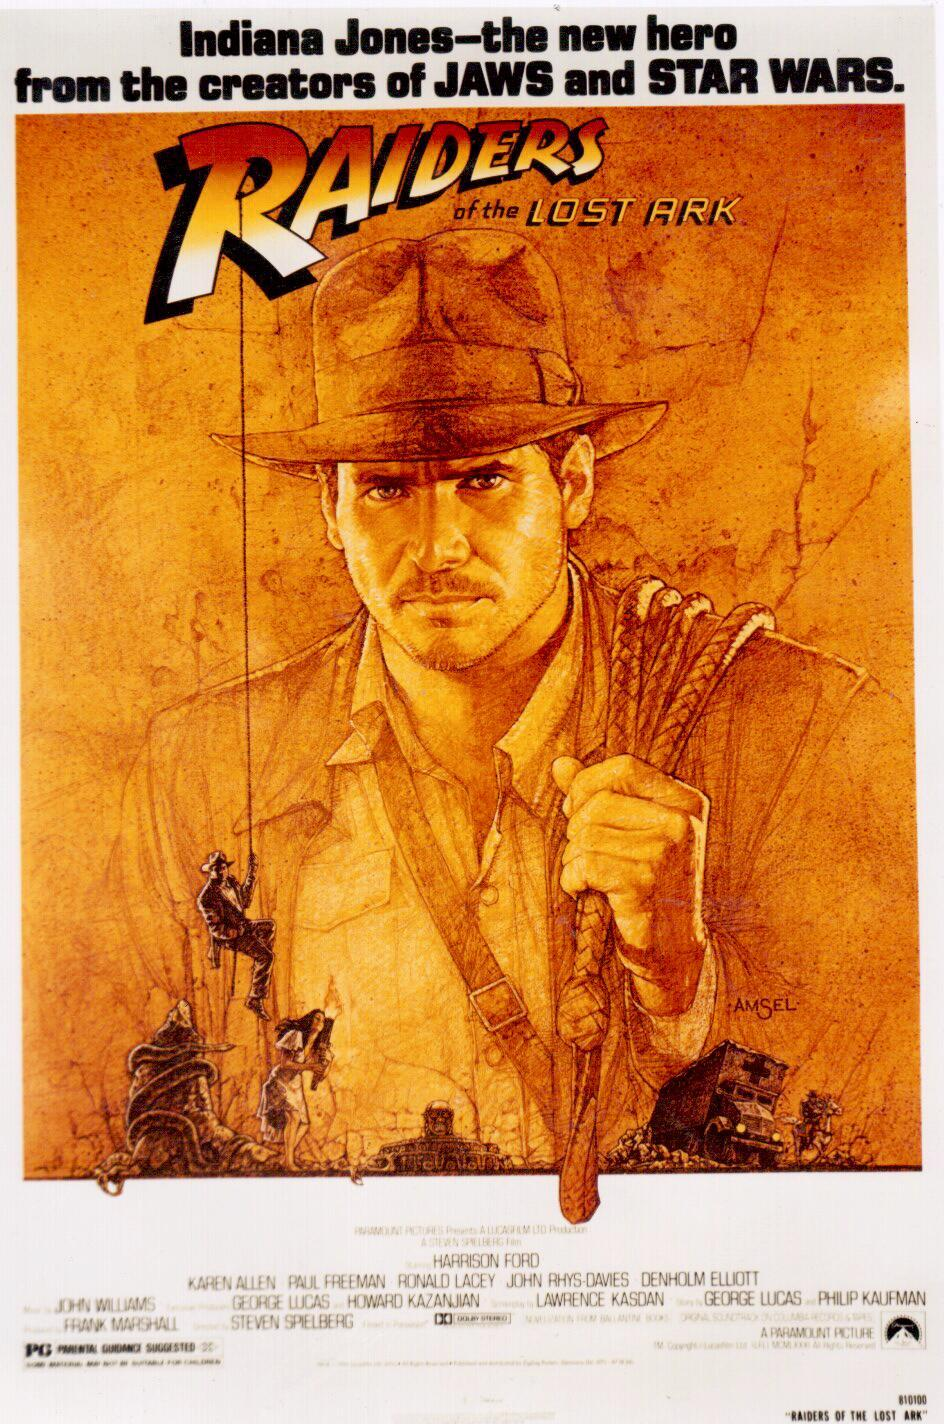 Signed raiders of the lost ark movie poster